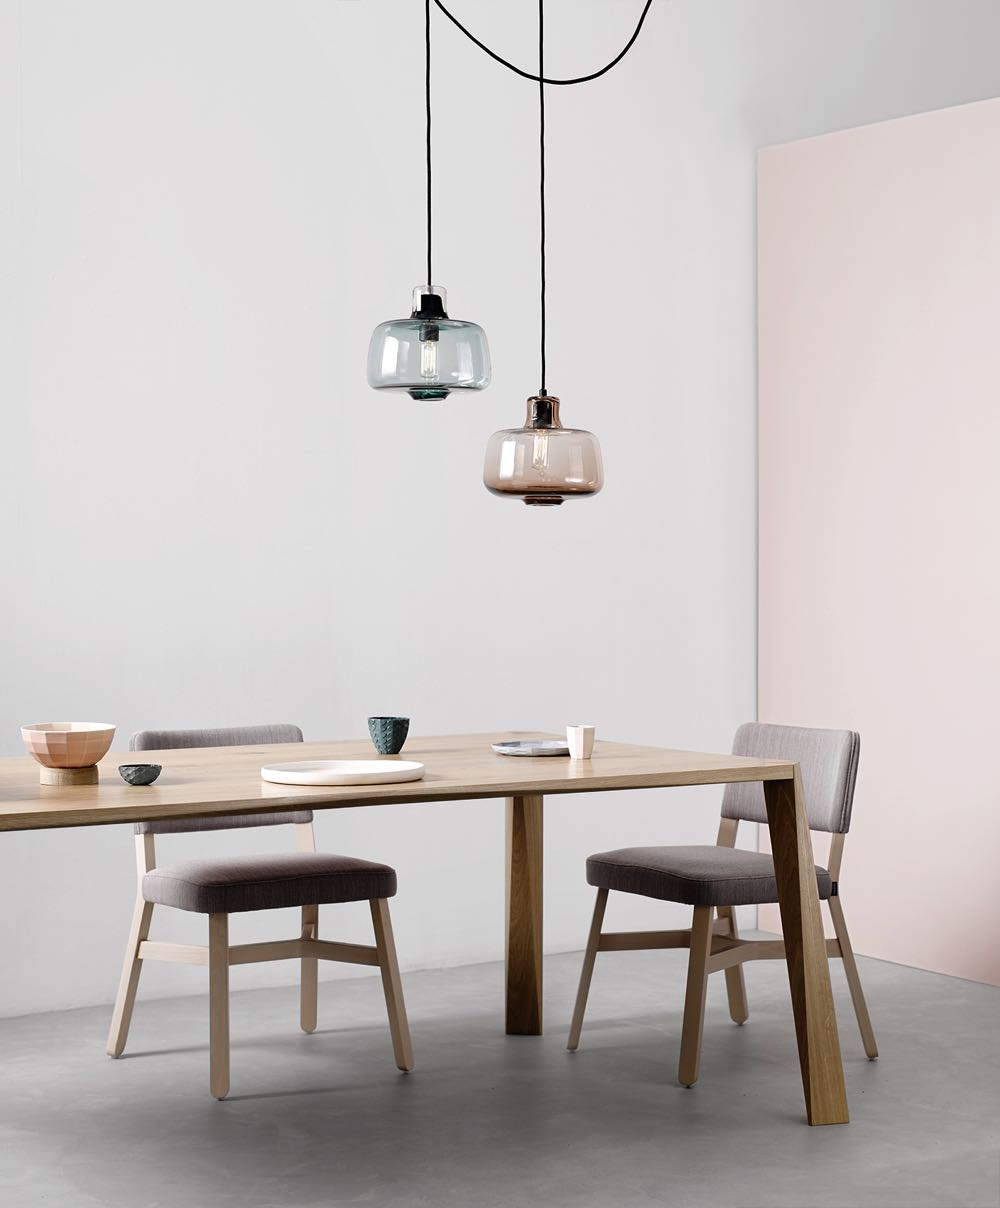 The all glass version of the 'Hide' pendant lights by Oxley Butterworth.